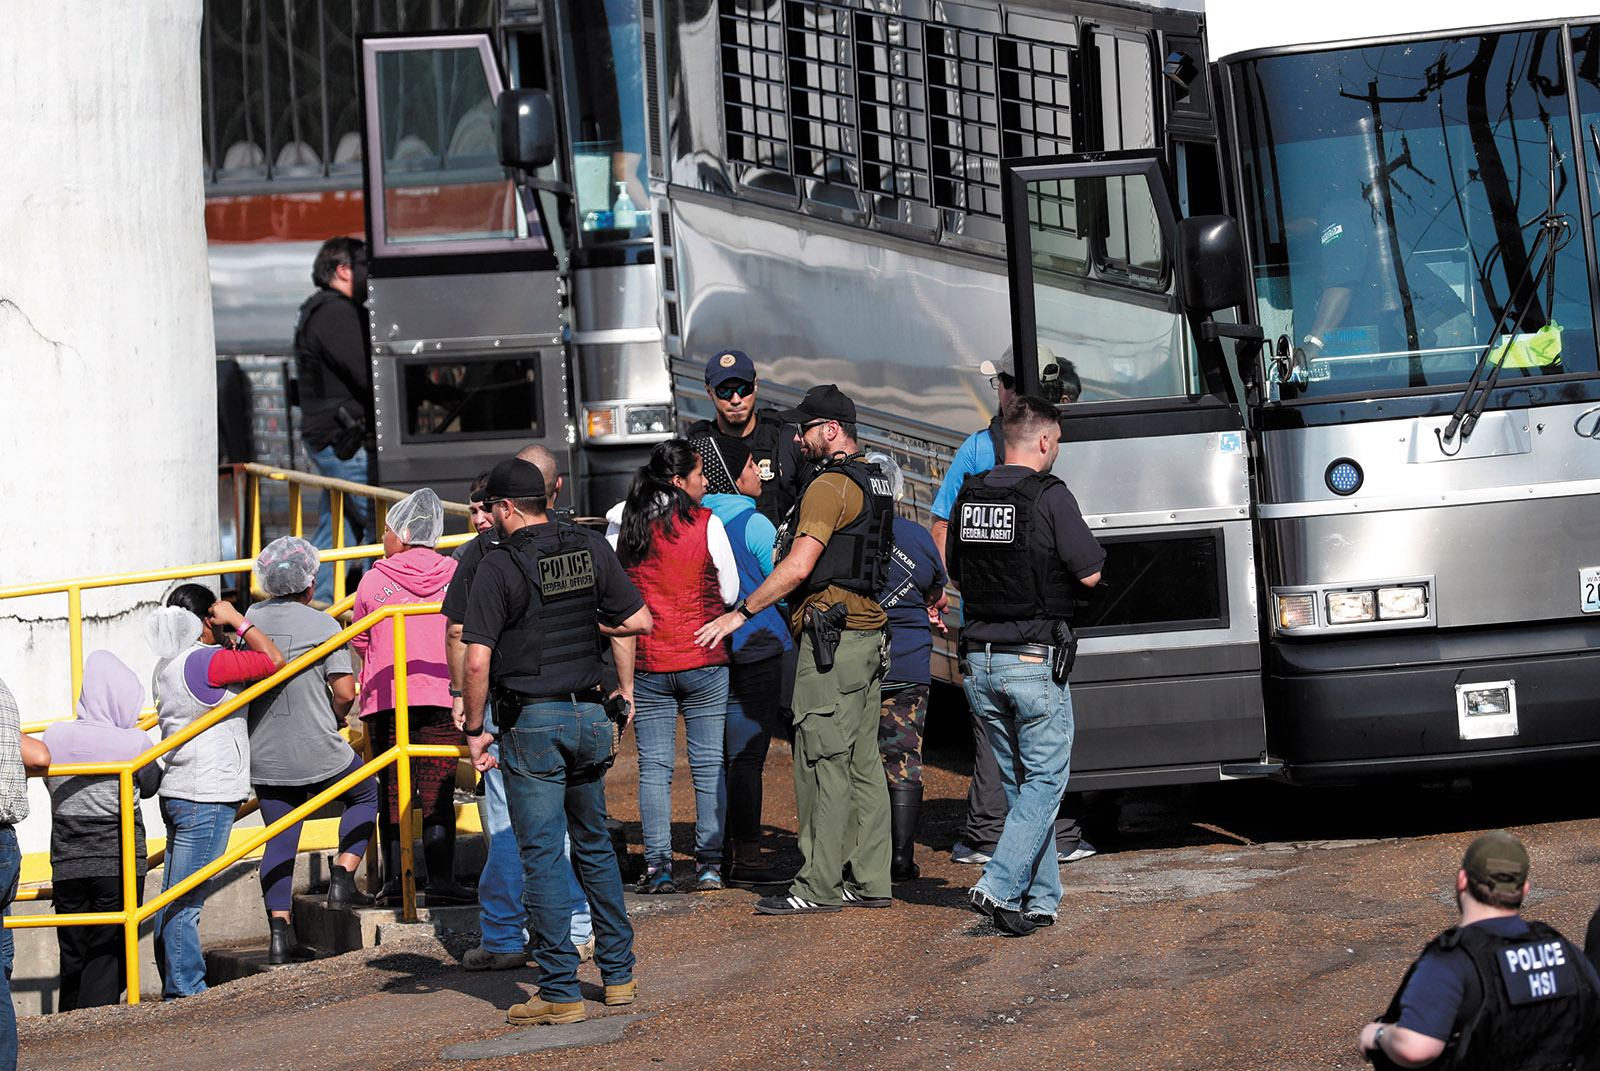 Workers from a Koch Foods plant being taken away by ICE agents during a raid, Morton, Mississippi, August 7, 2019